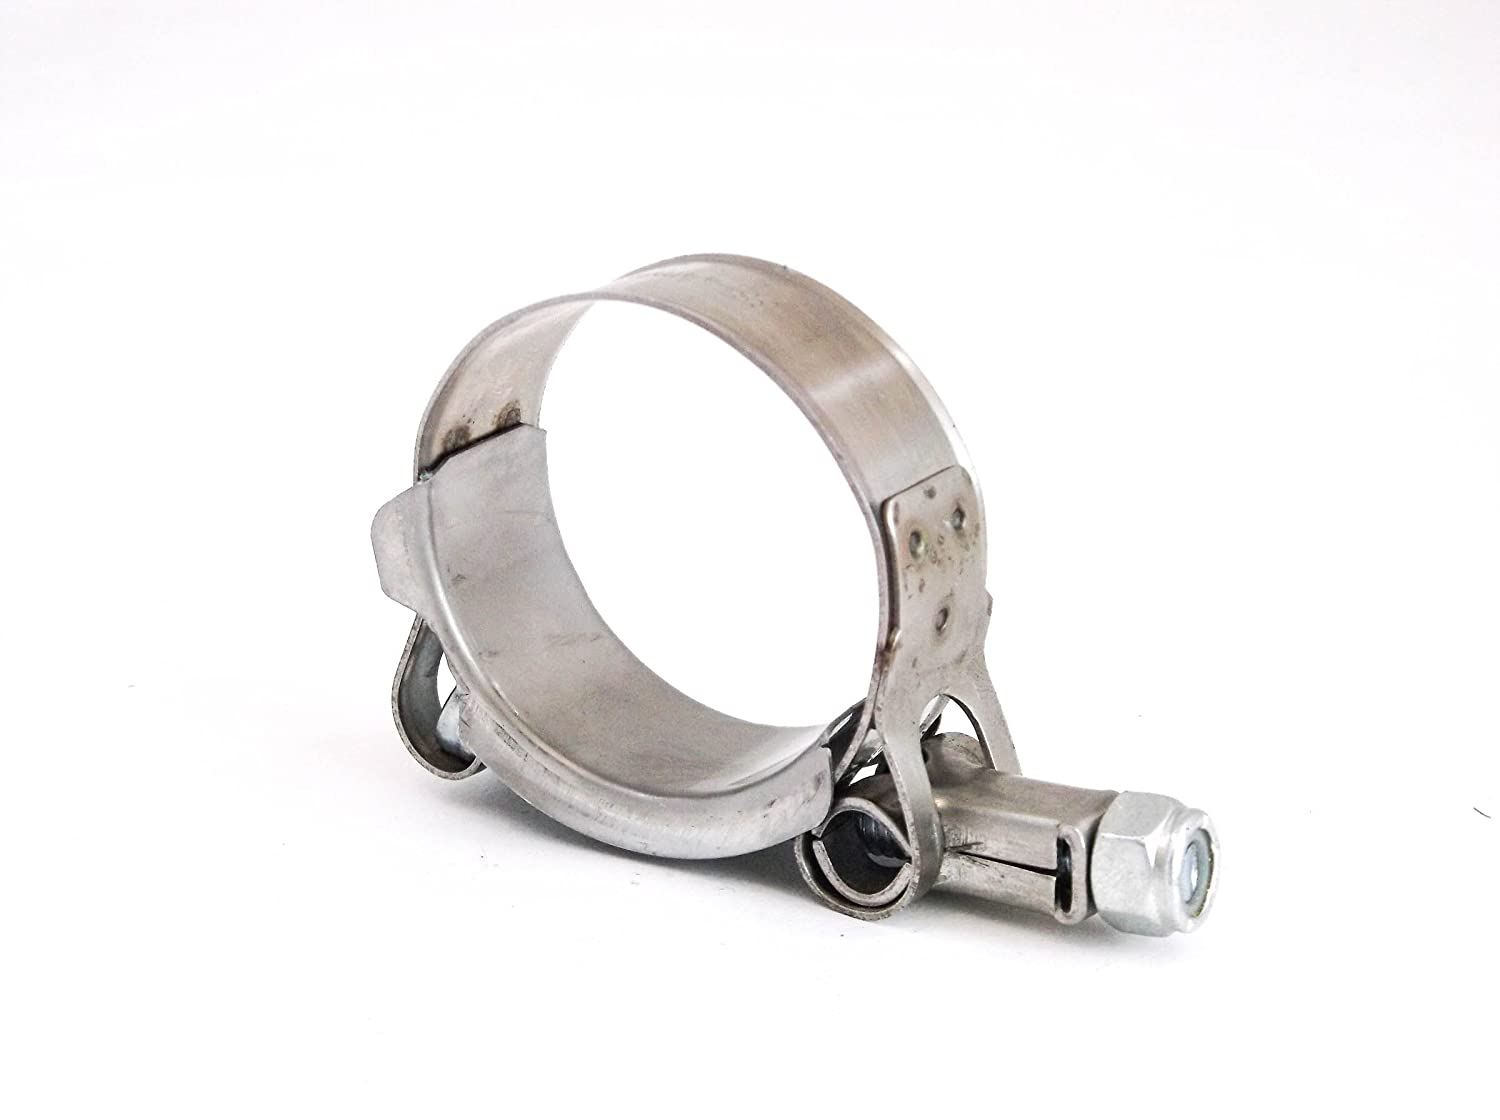 Premium 304 Stainless Steel T-Bolt Turbo Silicone Hose Clamp 1.5 38-44mm Red Hound Auto